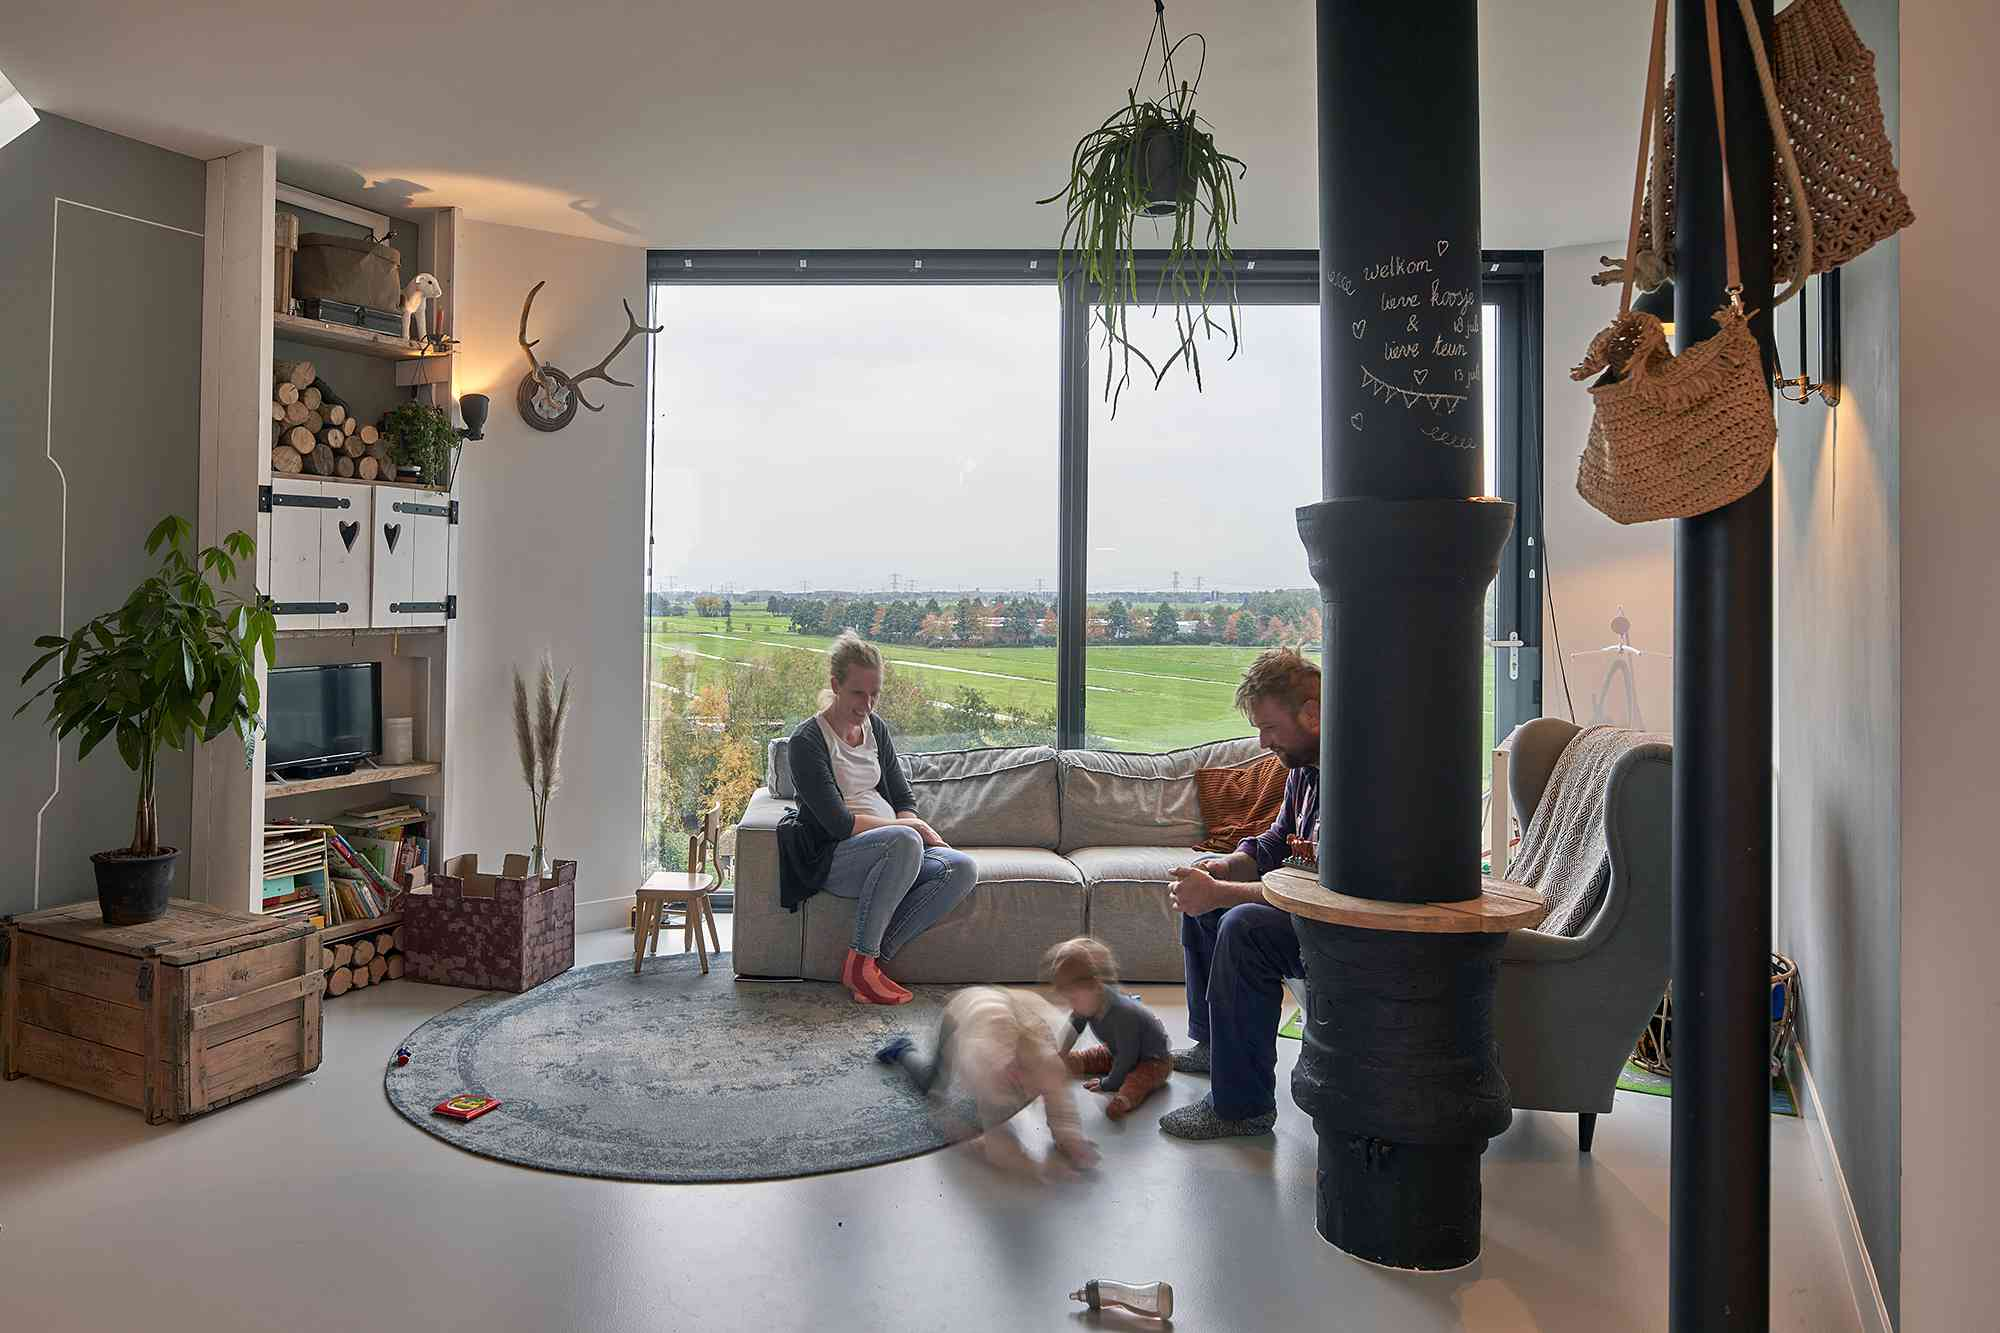 Dutch Water Tower family home RVArchitecture interior living room